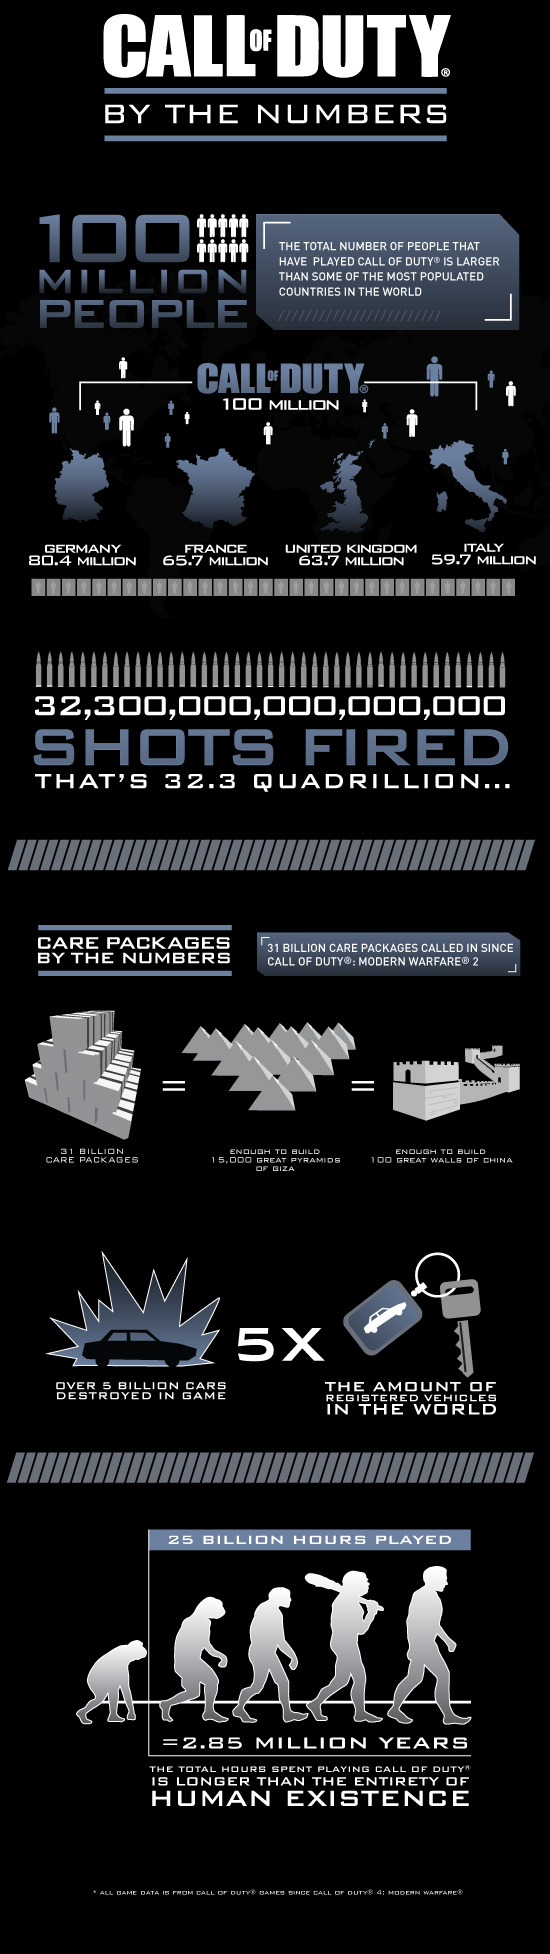 http://www.callofduty.com/content/dam/atvi/callofduty/ghosts/images/COD_Franchise_Infographic.jpg